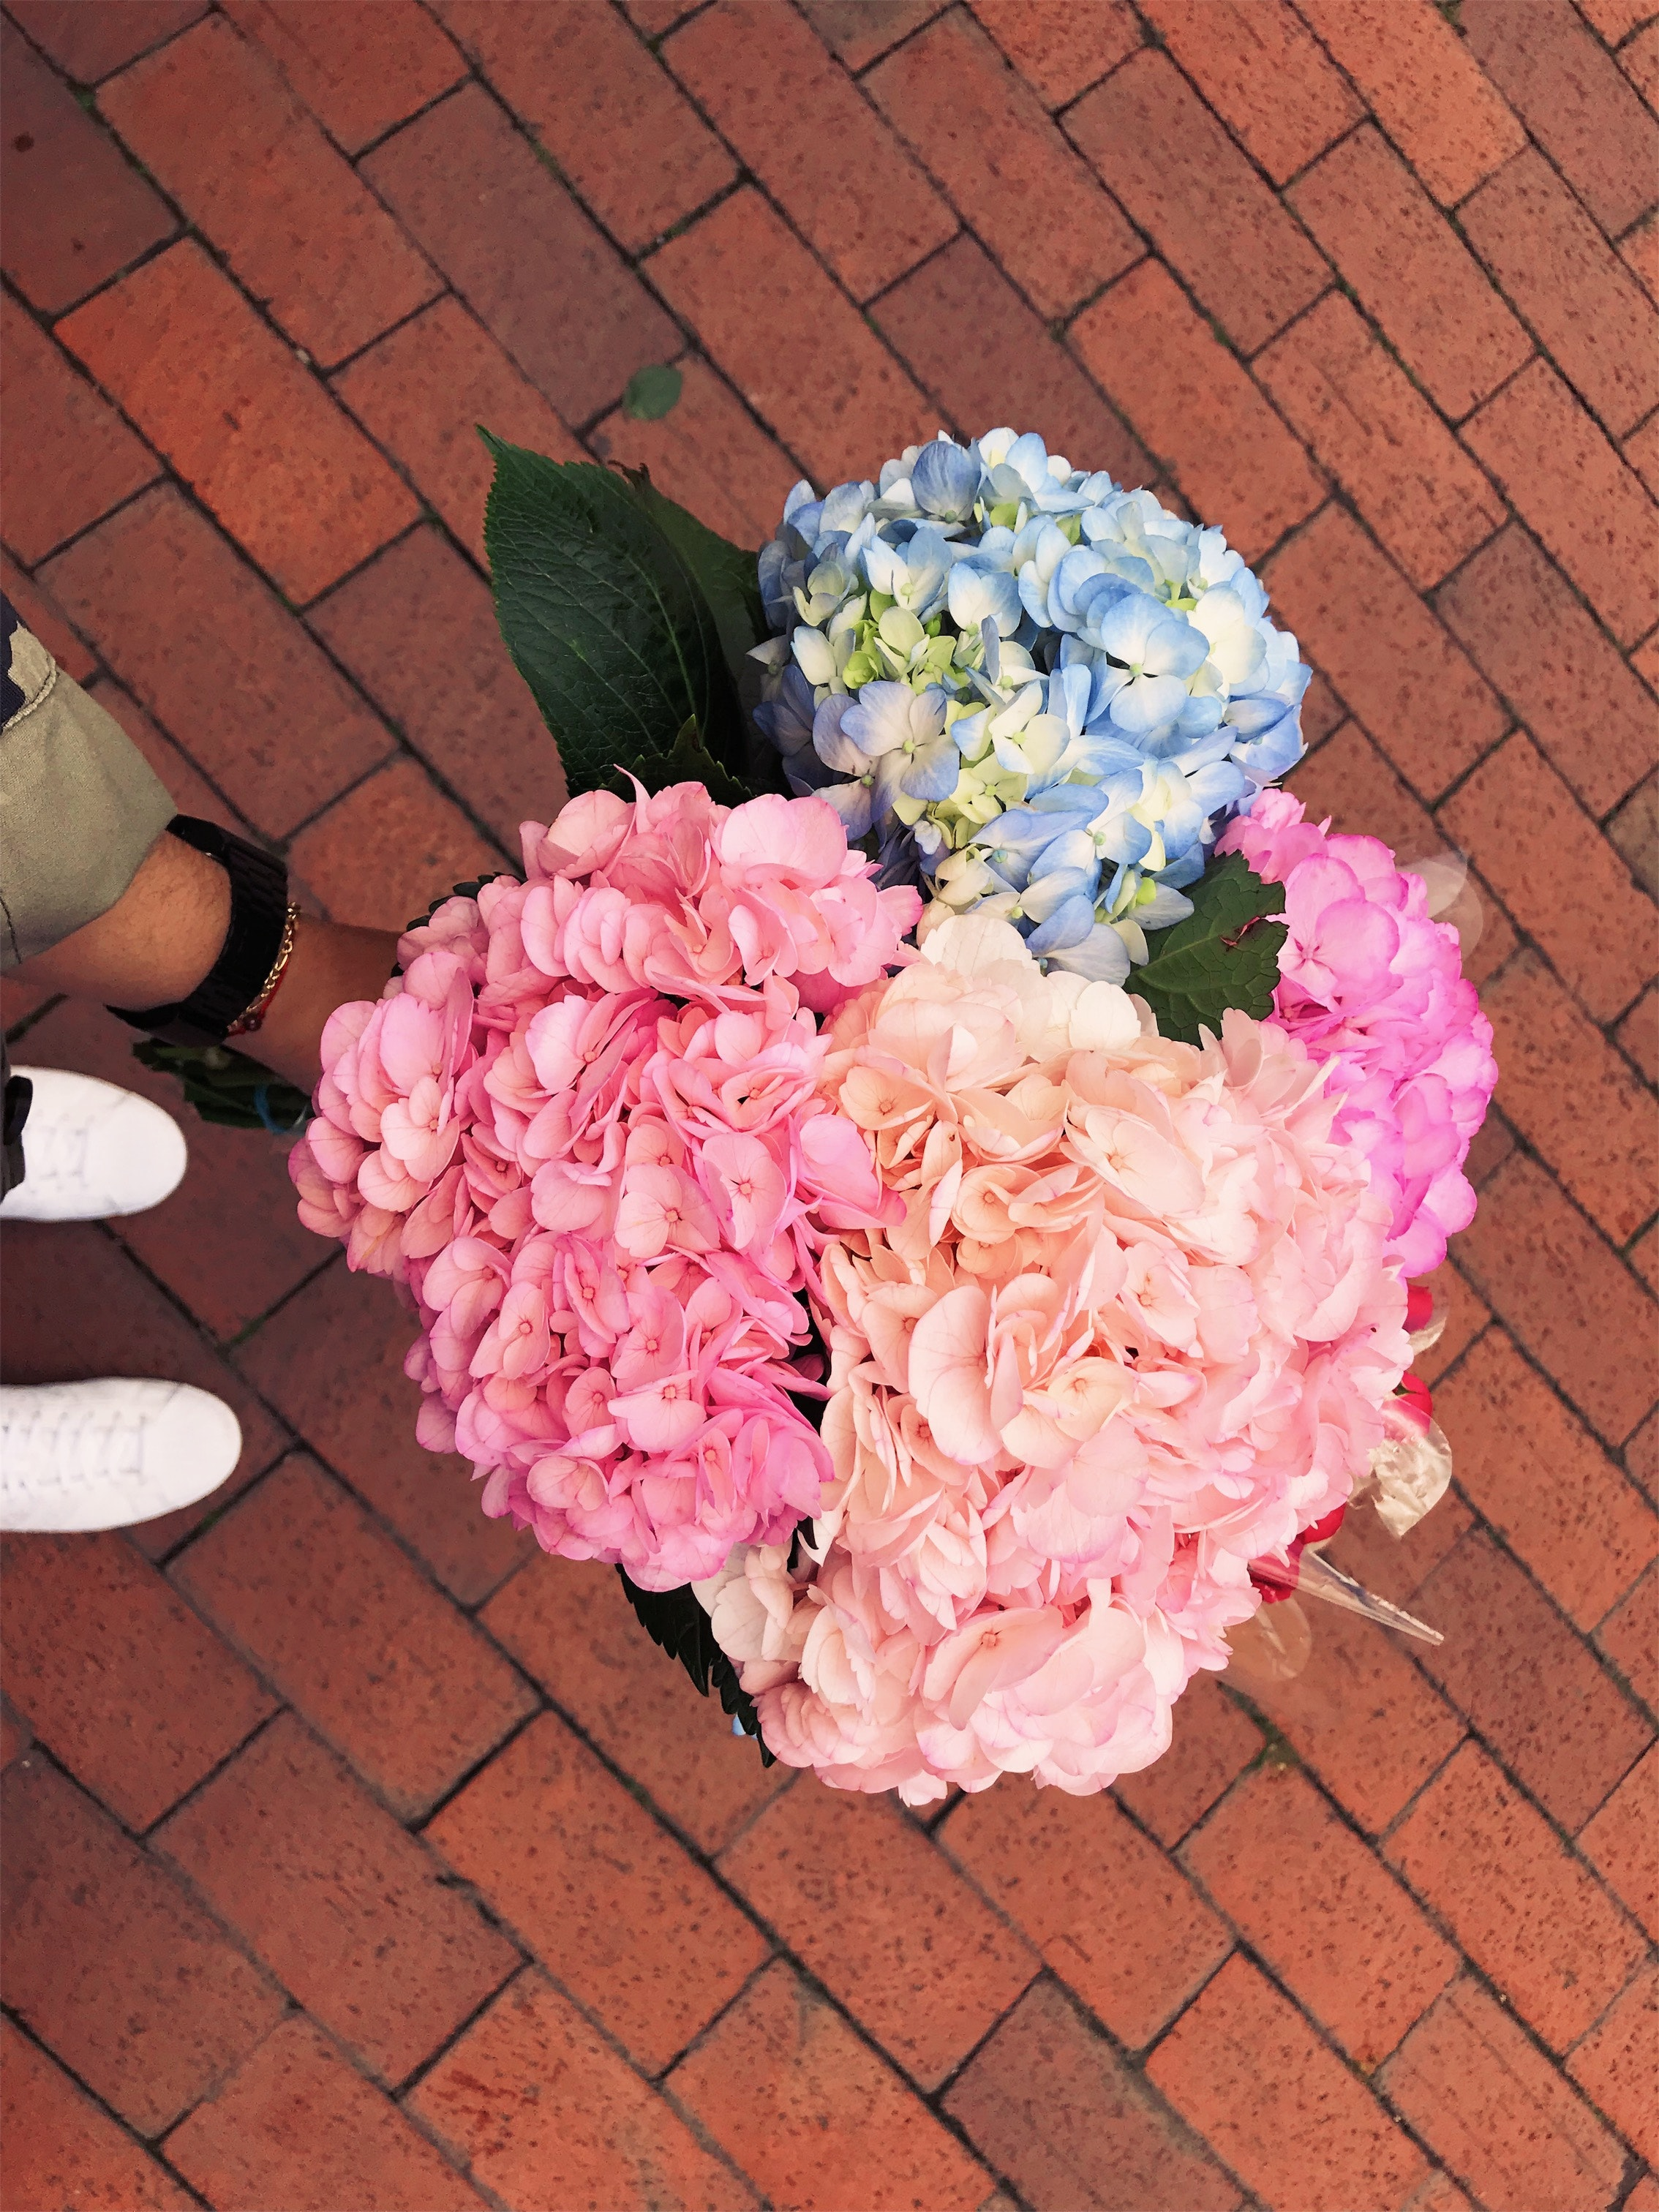 Assorted Color Flower Bouquets On Ground Free Stock Photo